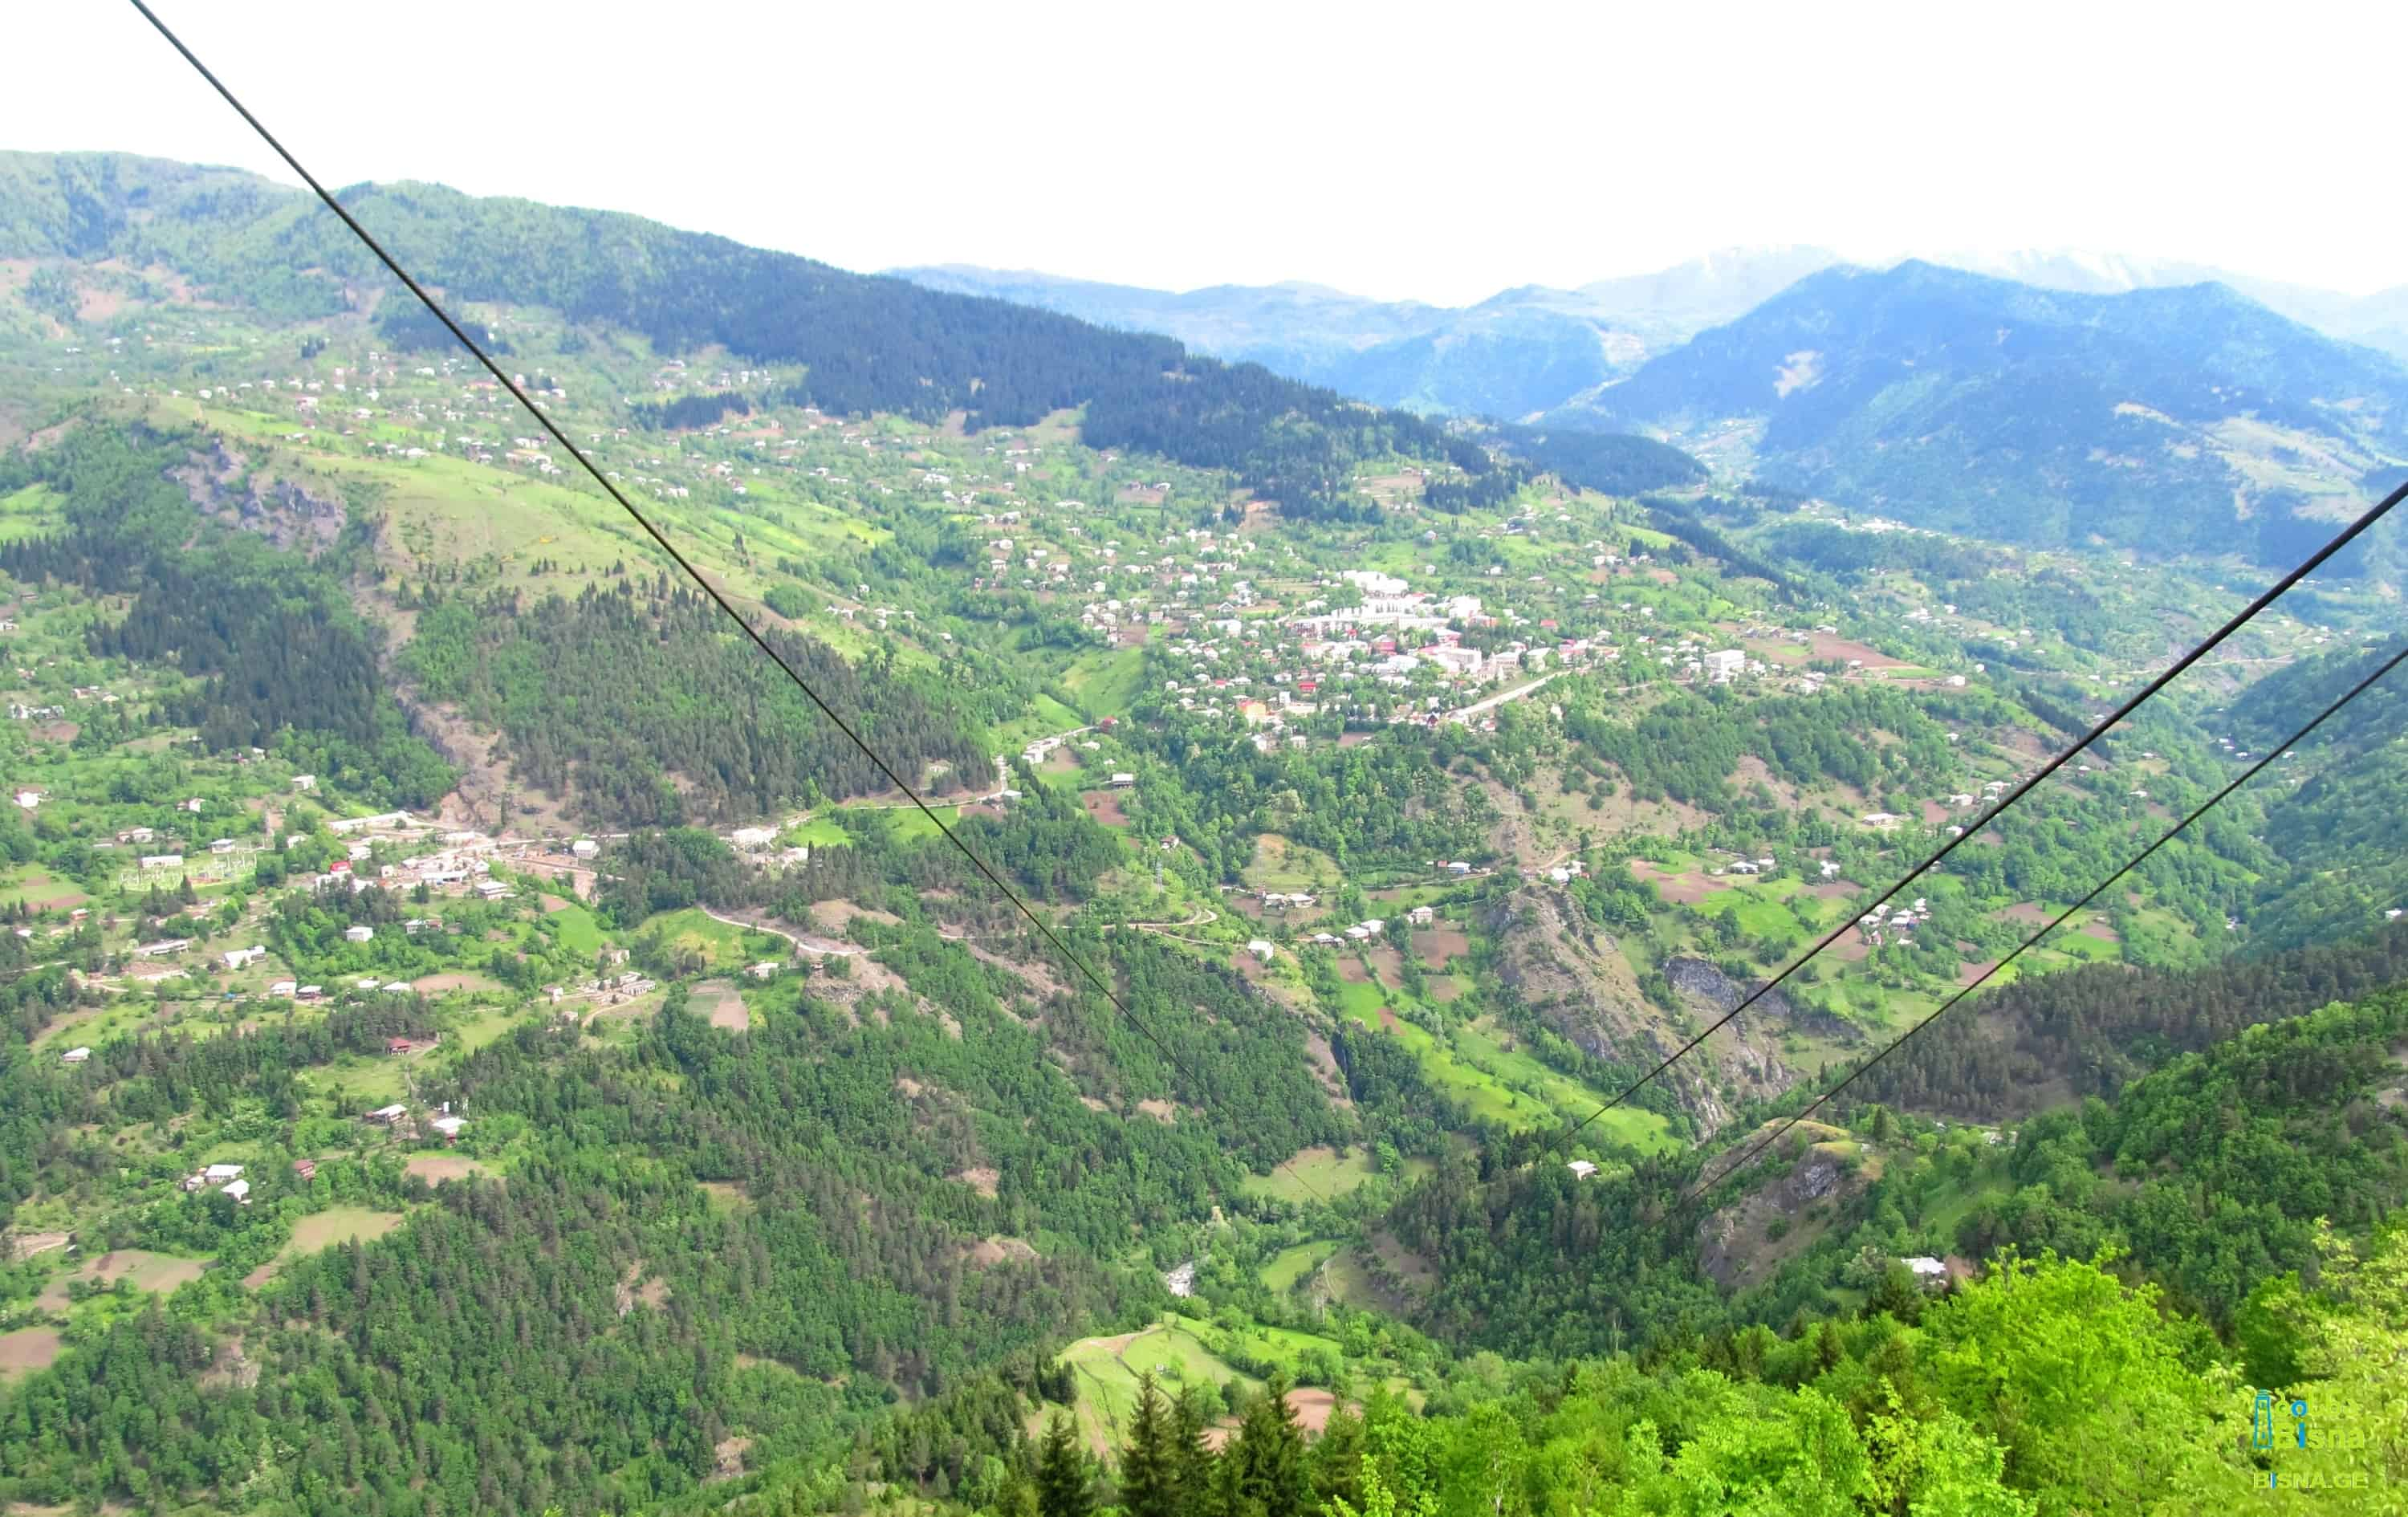 Khulo town and neighbouring villages seen from Tago Cableway Station